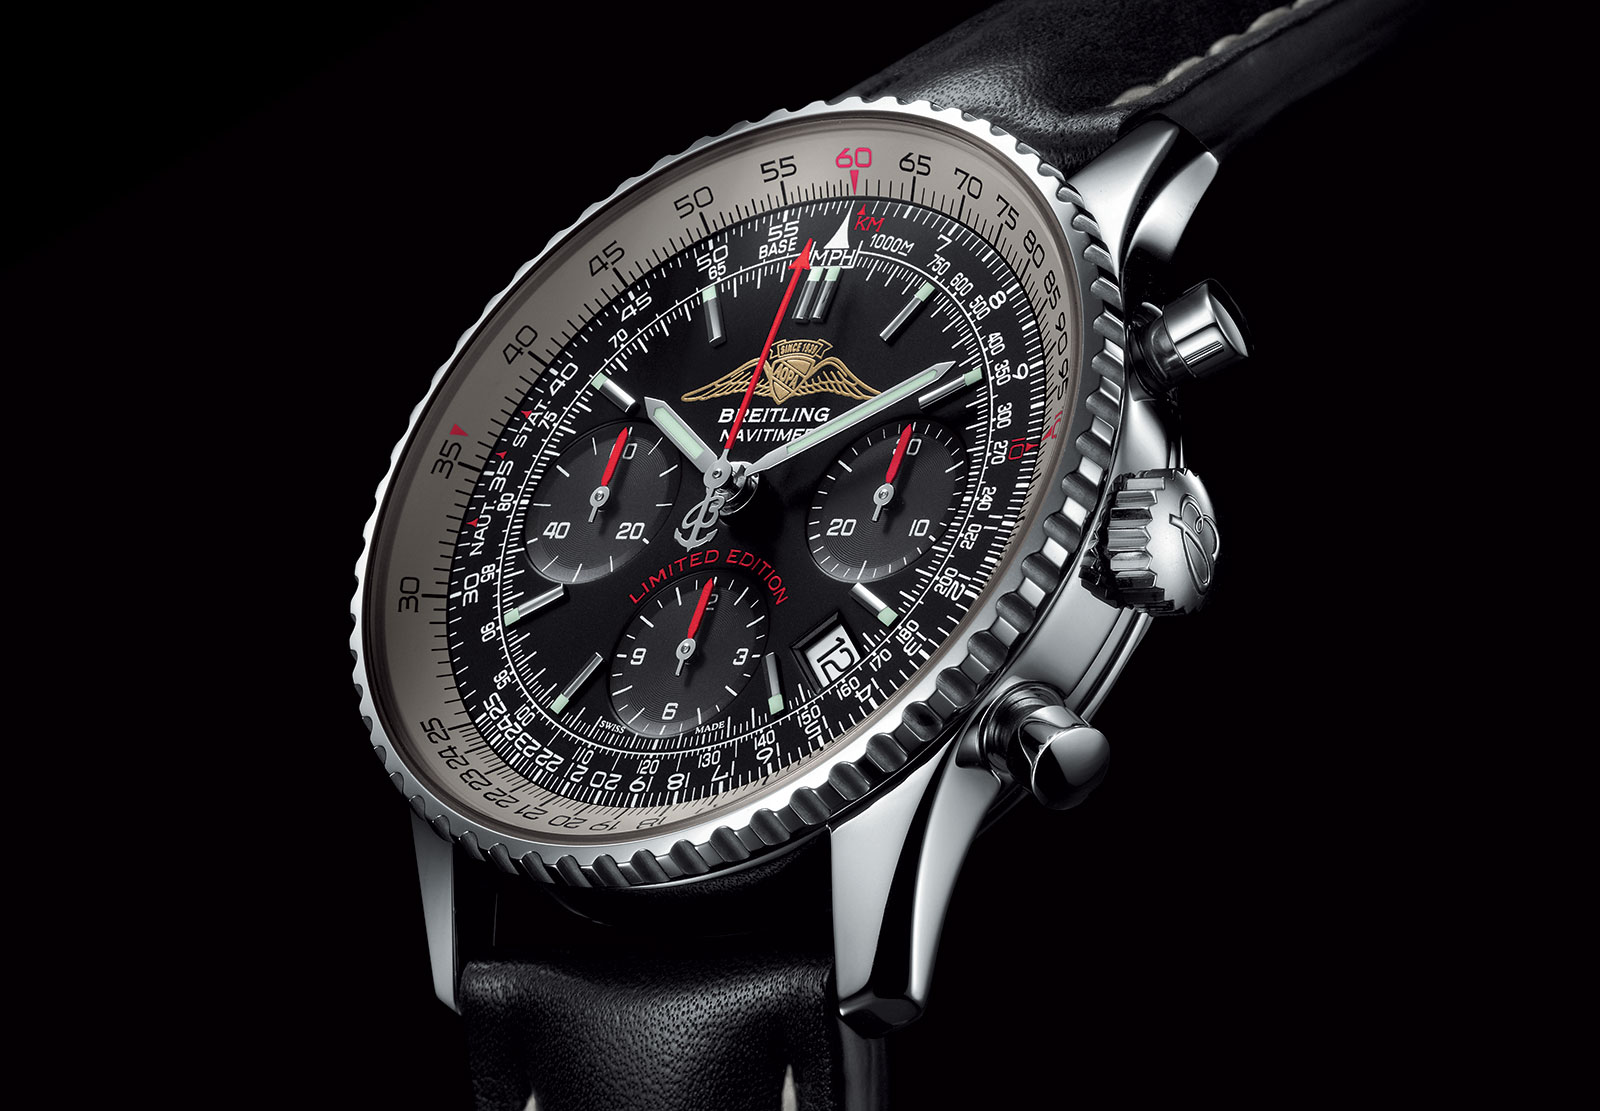 watches by sjx breitling pays tribute to history with the. Black Bedroom Furniture Sets. Home Design Ideas